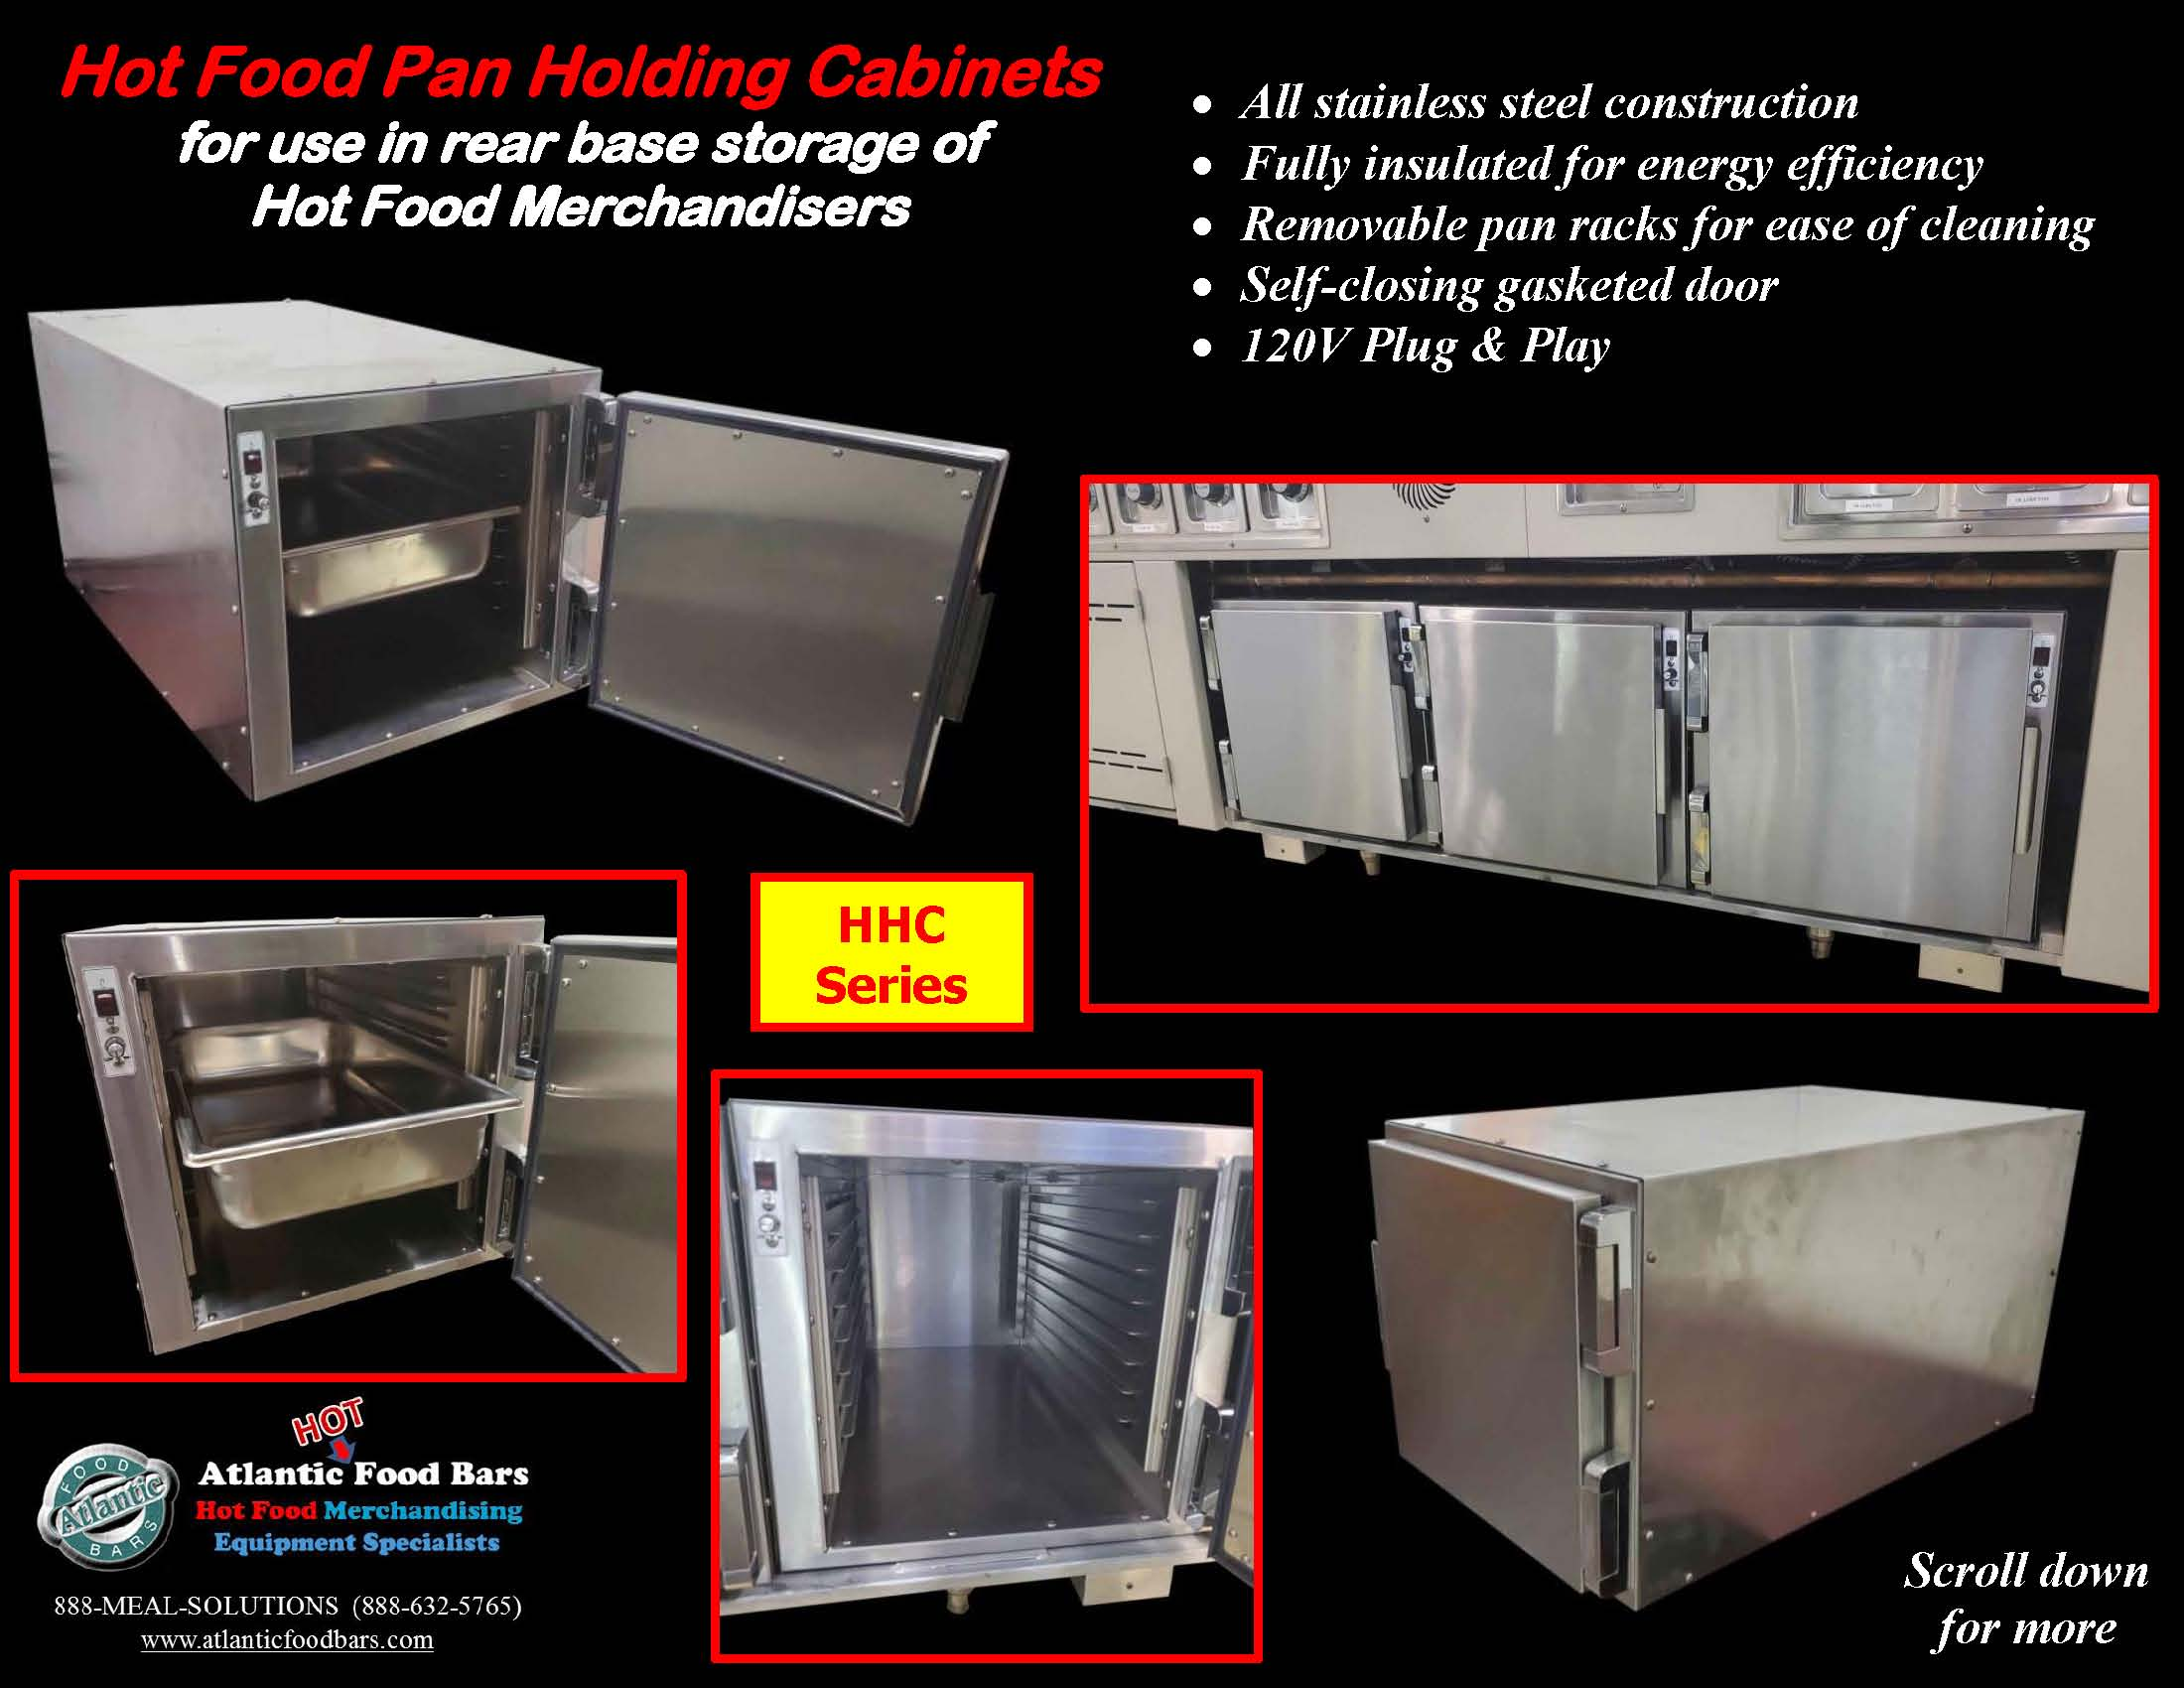 Atlantic Food Bars - Hot Food Pan Holding Cabinets for use in rear base storage of hot food merchandisers - HHC_Page_1